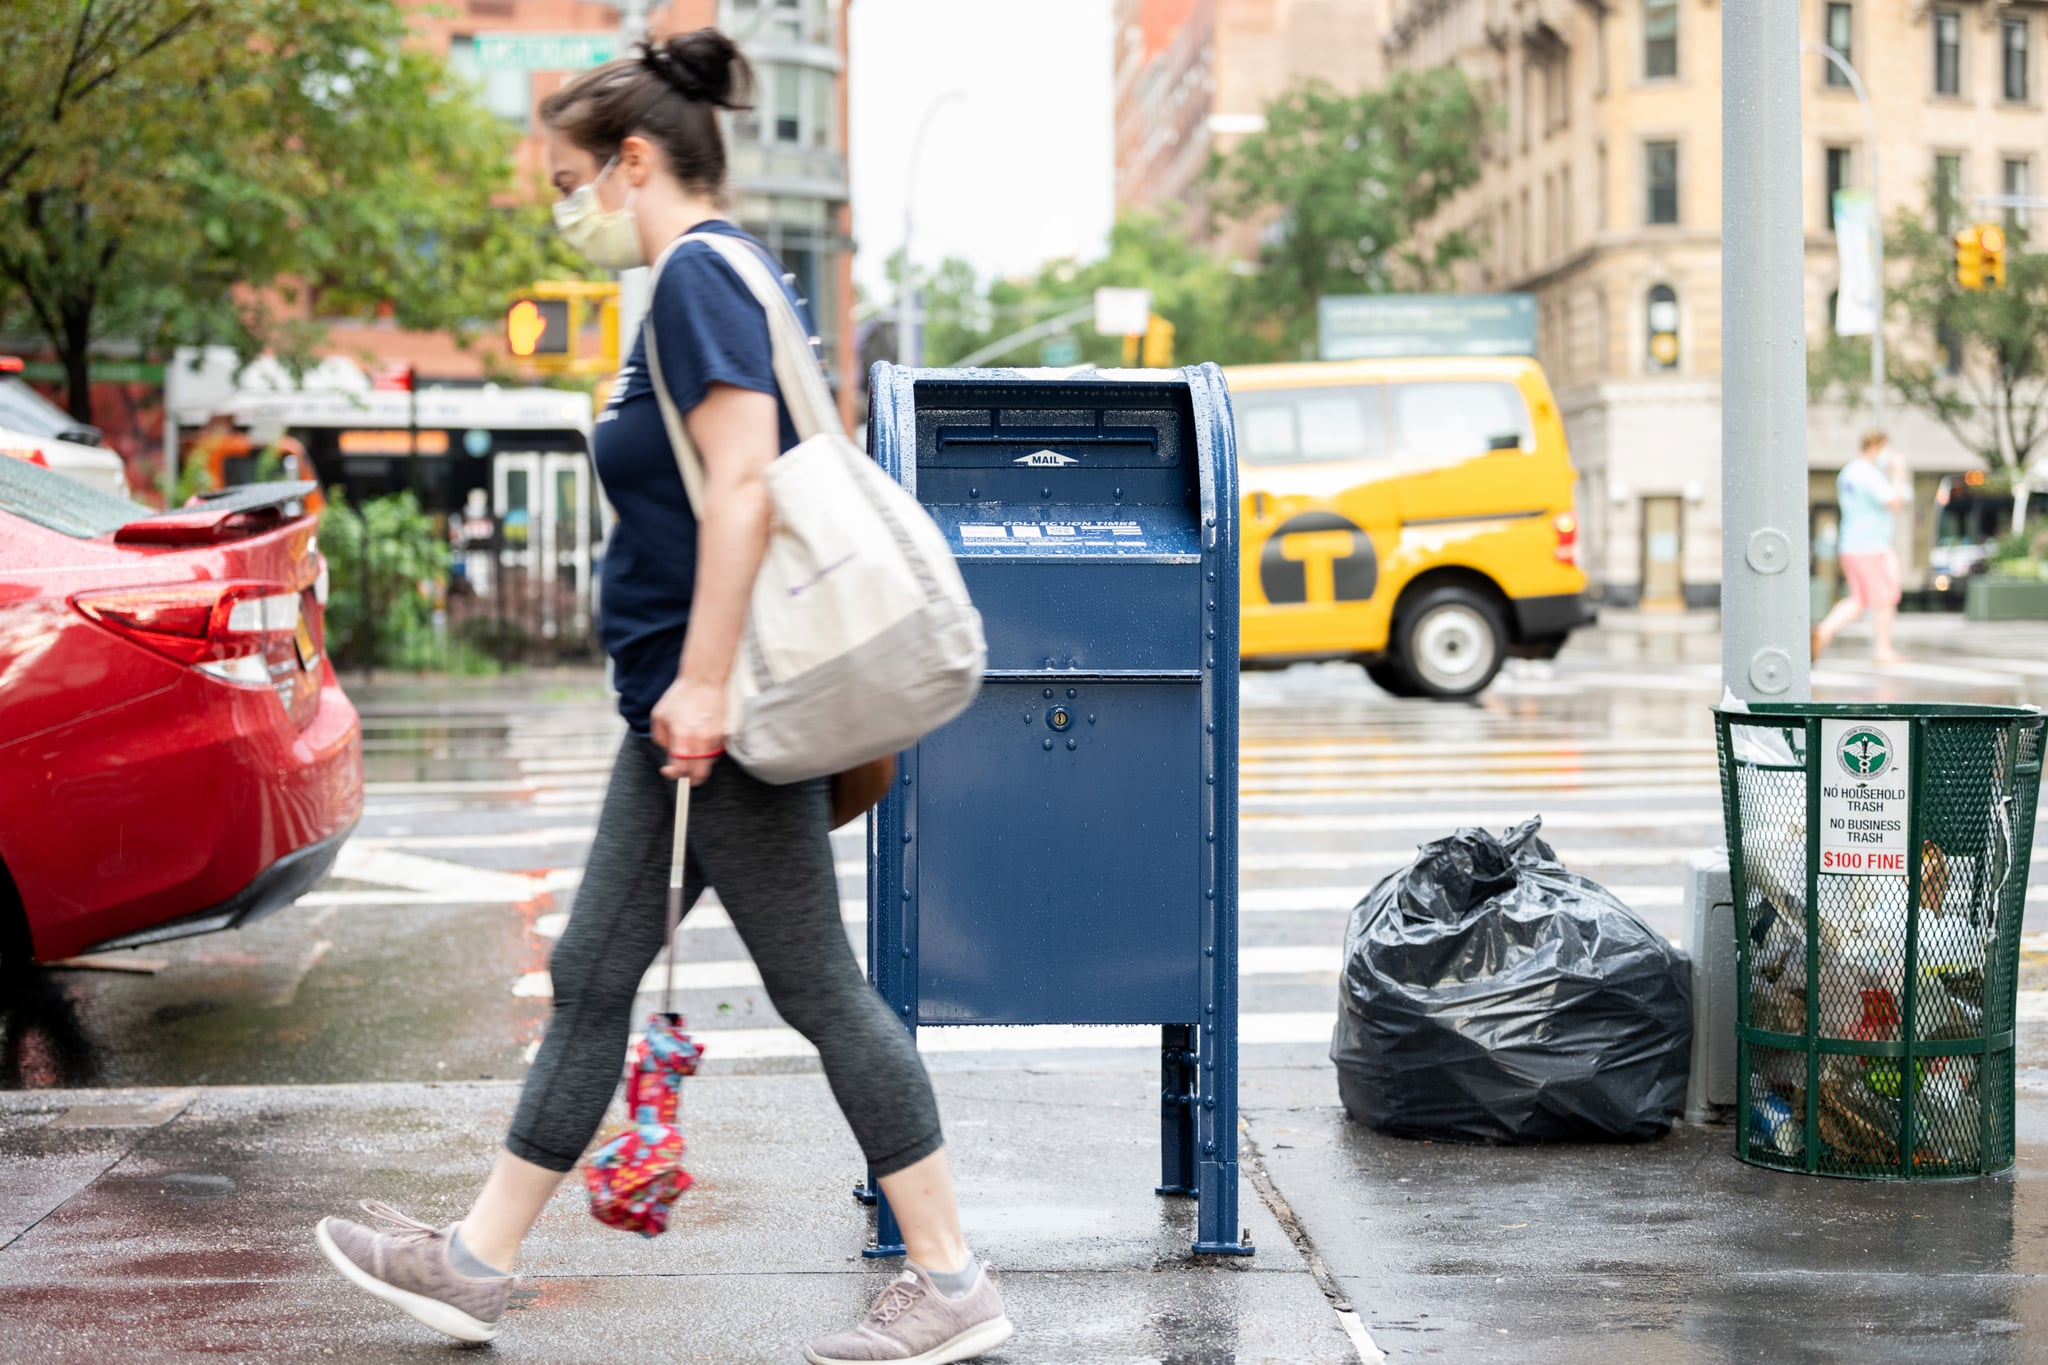 NEW YORK, NEW YORK - AUGUST 25: A woman wearing a mask walks past a USPS mailbox as the city continues Phase 4 of re-opening following restrictions imposed to slow the spread of coronavirus on August 25, 2020 in New York City. The fourth phase allows outdoor arts and entertainment, sporting events without fans and media production. (Photo by Alexi Rosenfeld/Getty Images)